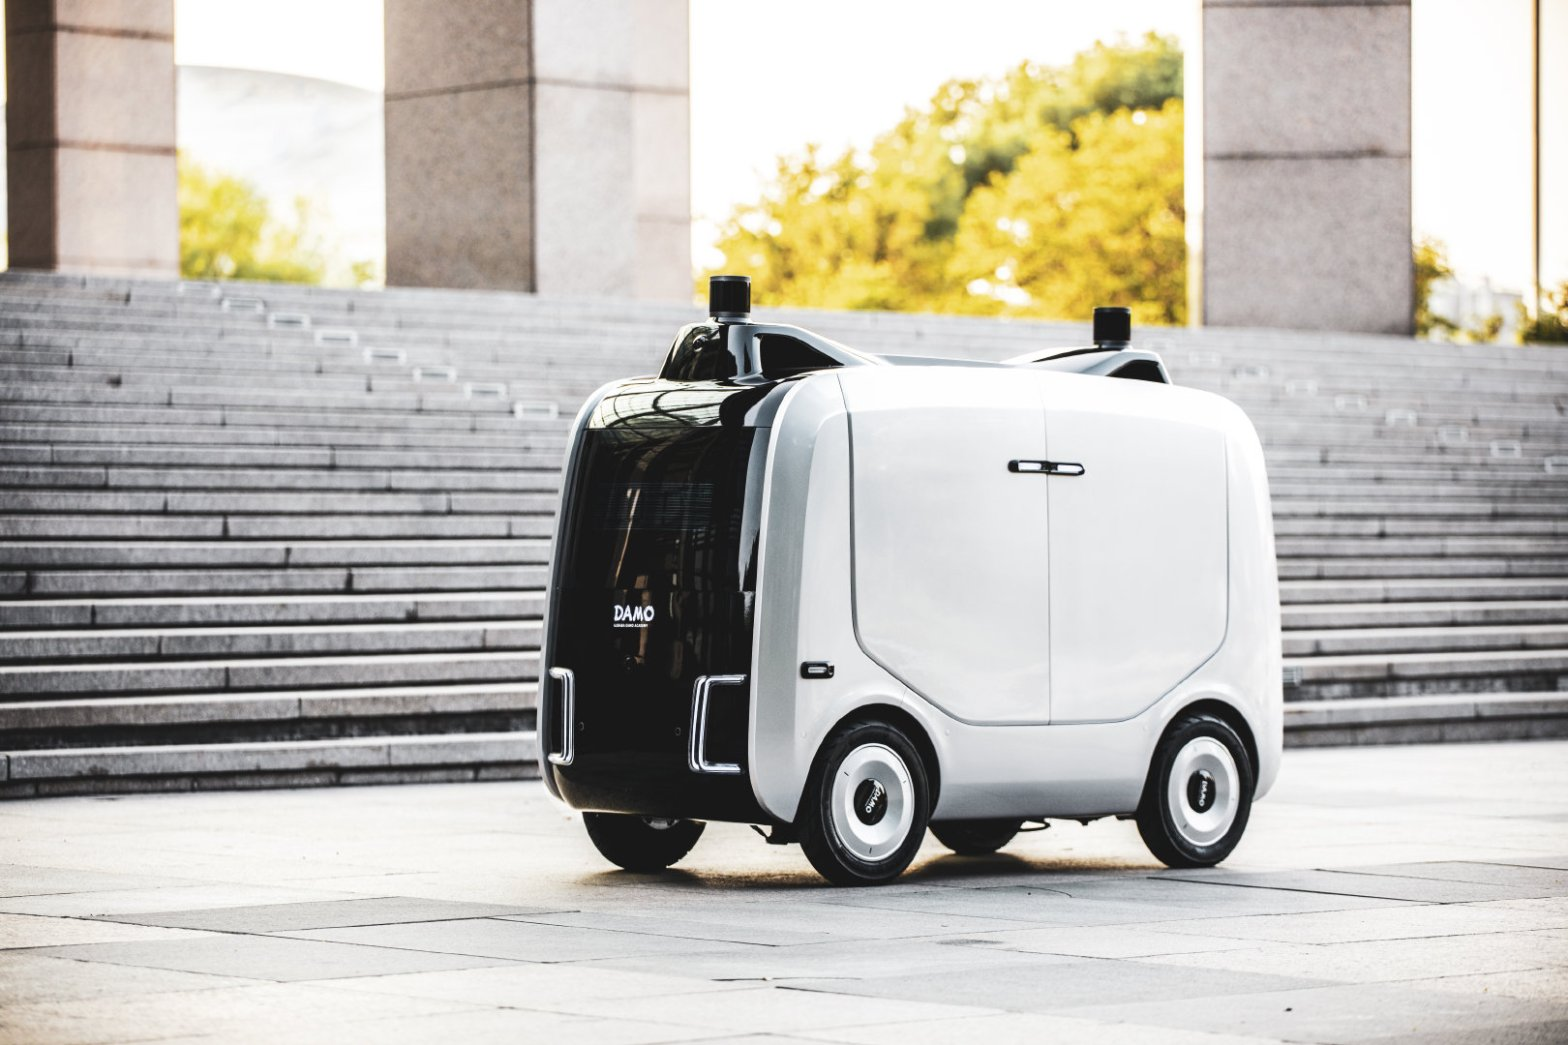 Autonomous delivery robots in China is the latest fad, who wins the race?